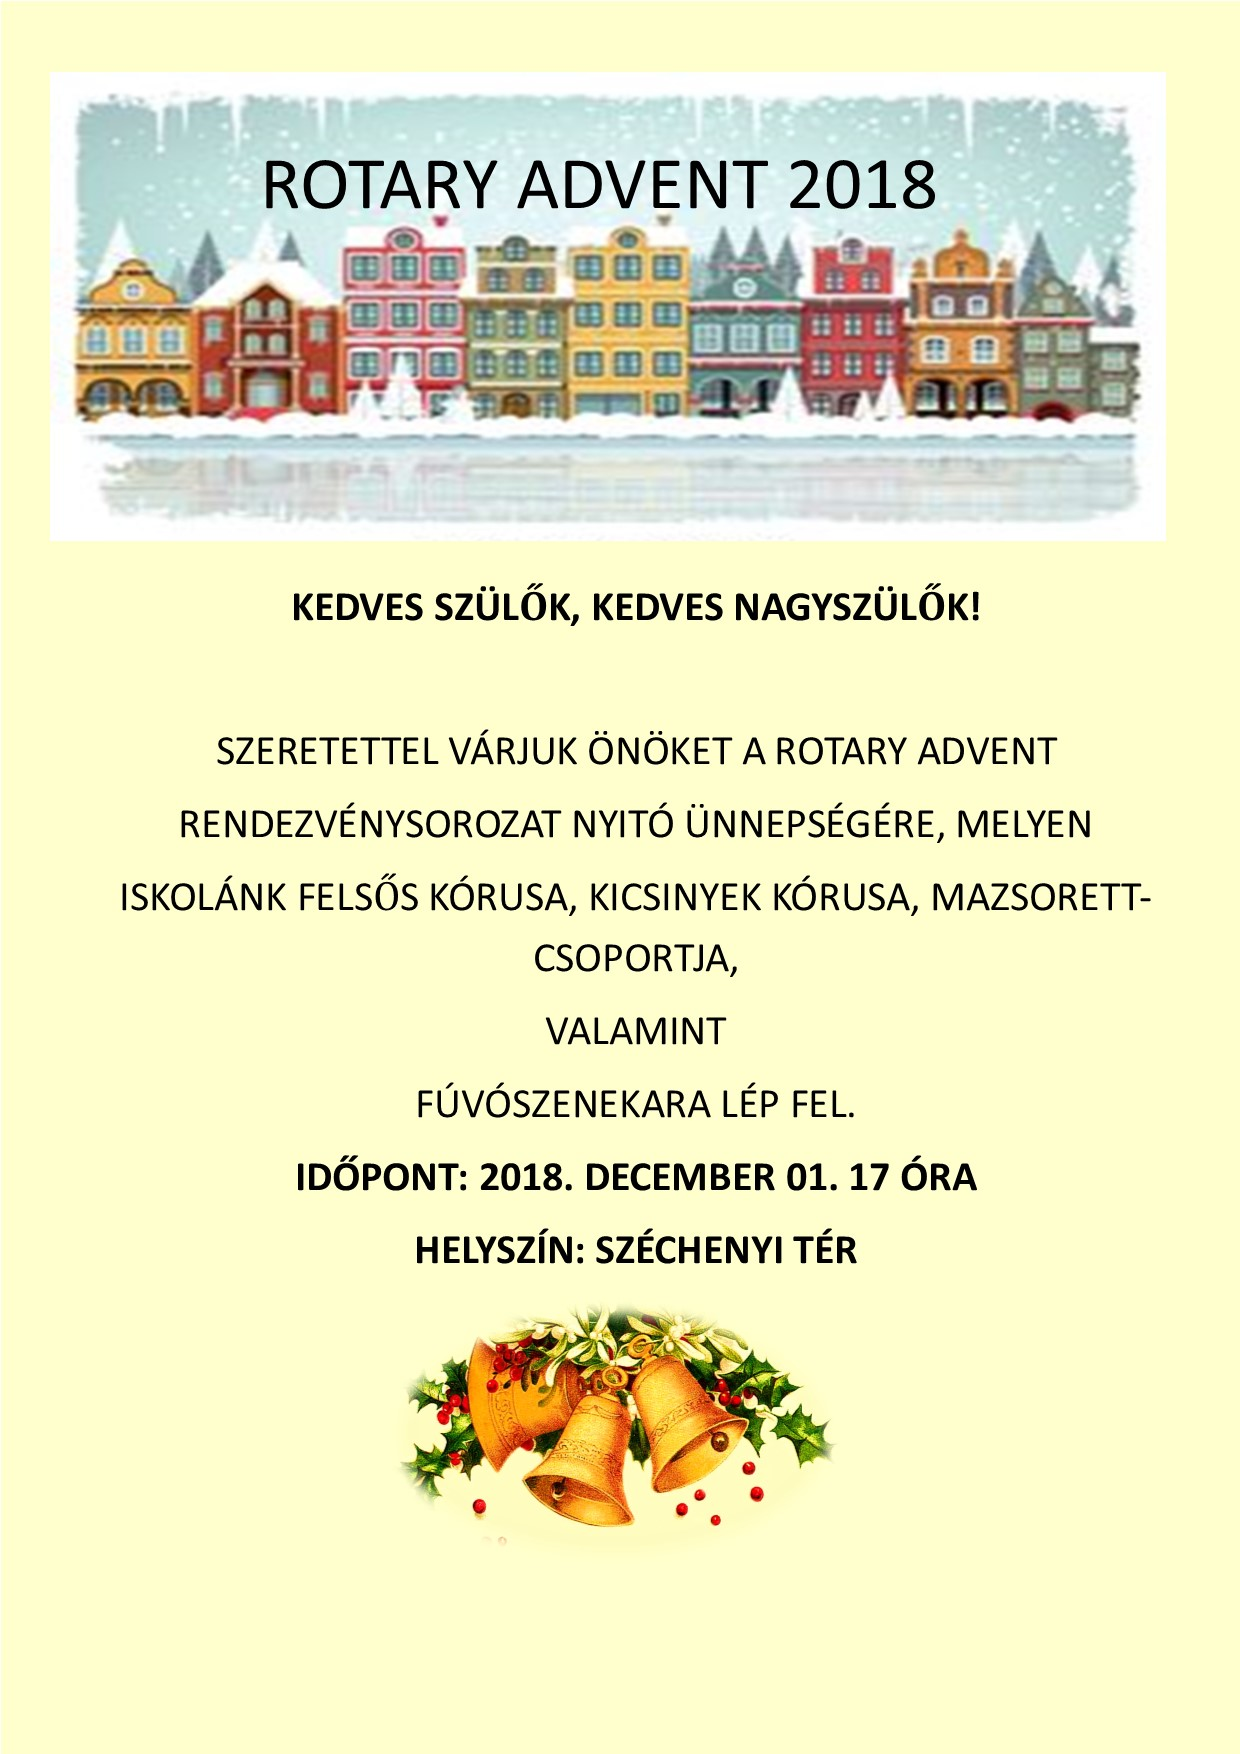 meghivo__rotari_advent__20181201.jpg